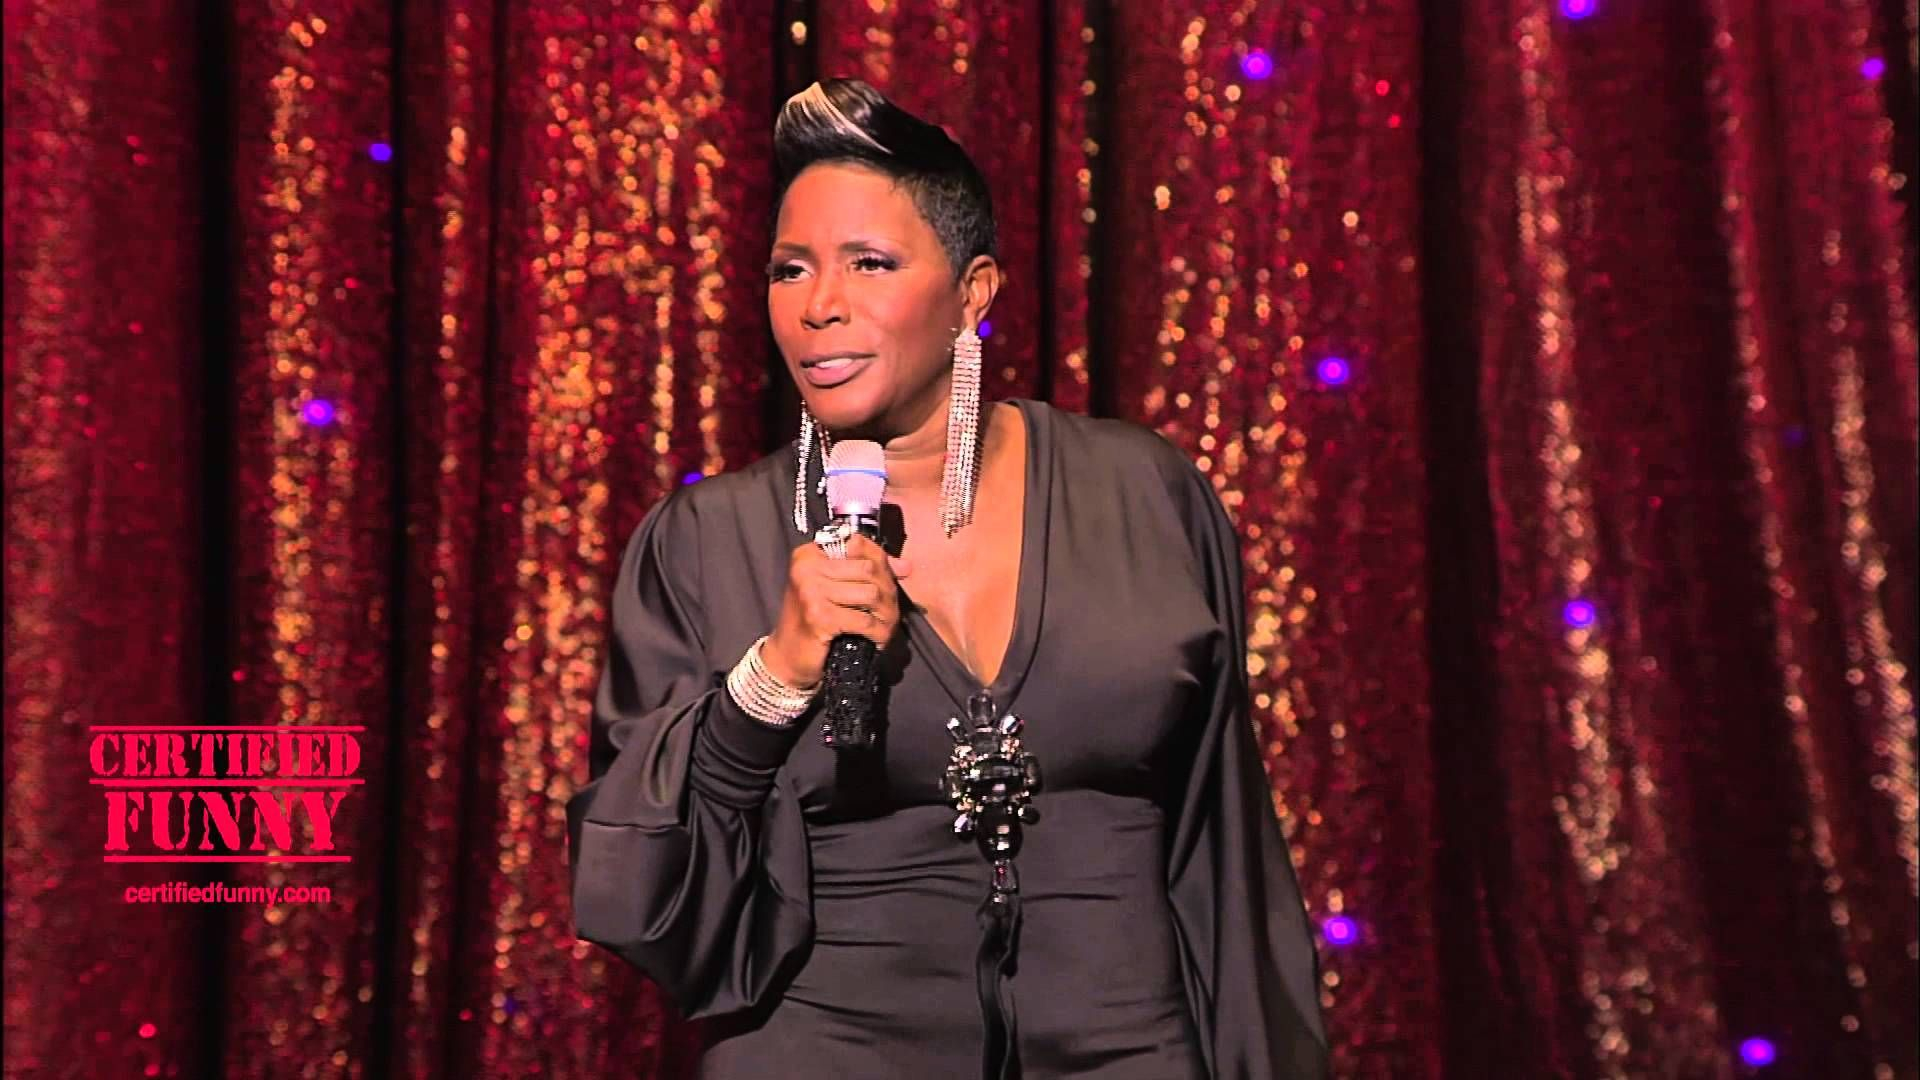 Sommore chandelier status laughs tears smiles and cramps sommore chandelier status laughs tears smiles and cramps pinterest chandeliers arubaitofo Images